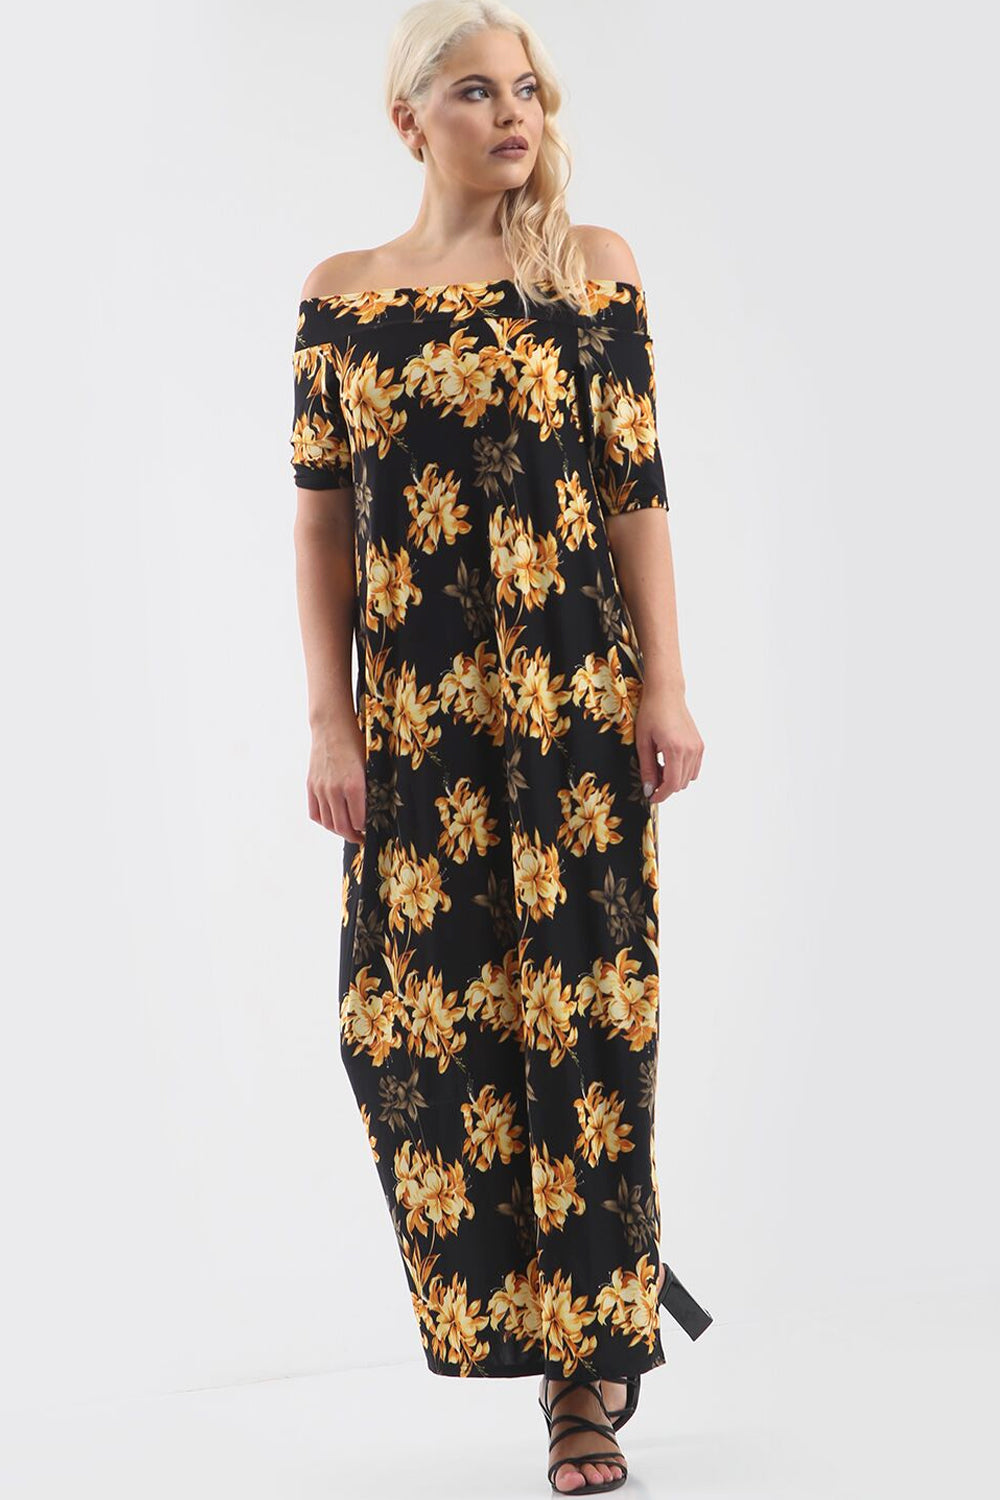 Black Off Shoulder Gold Floral Print Maxi Dress - bejealous-com